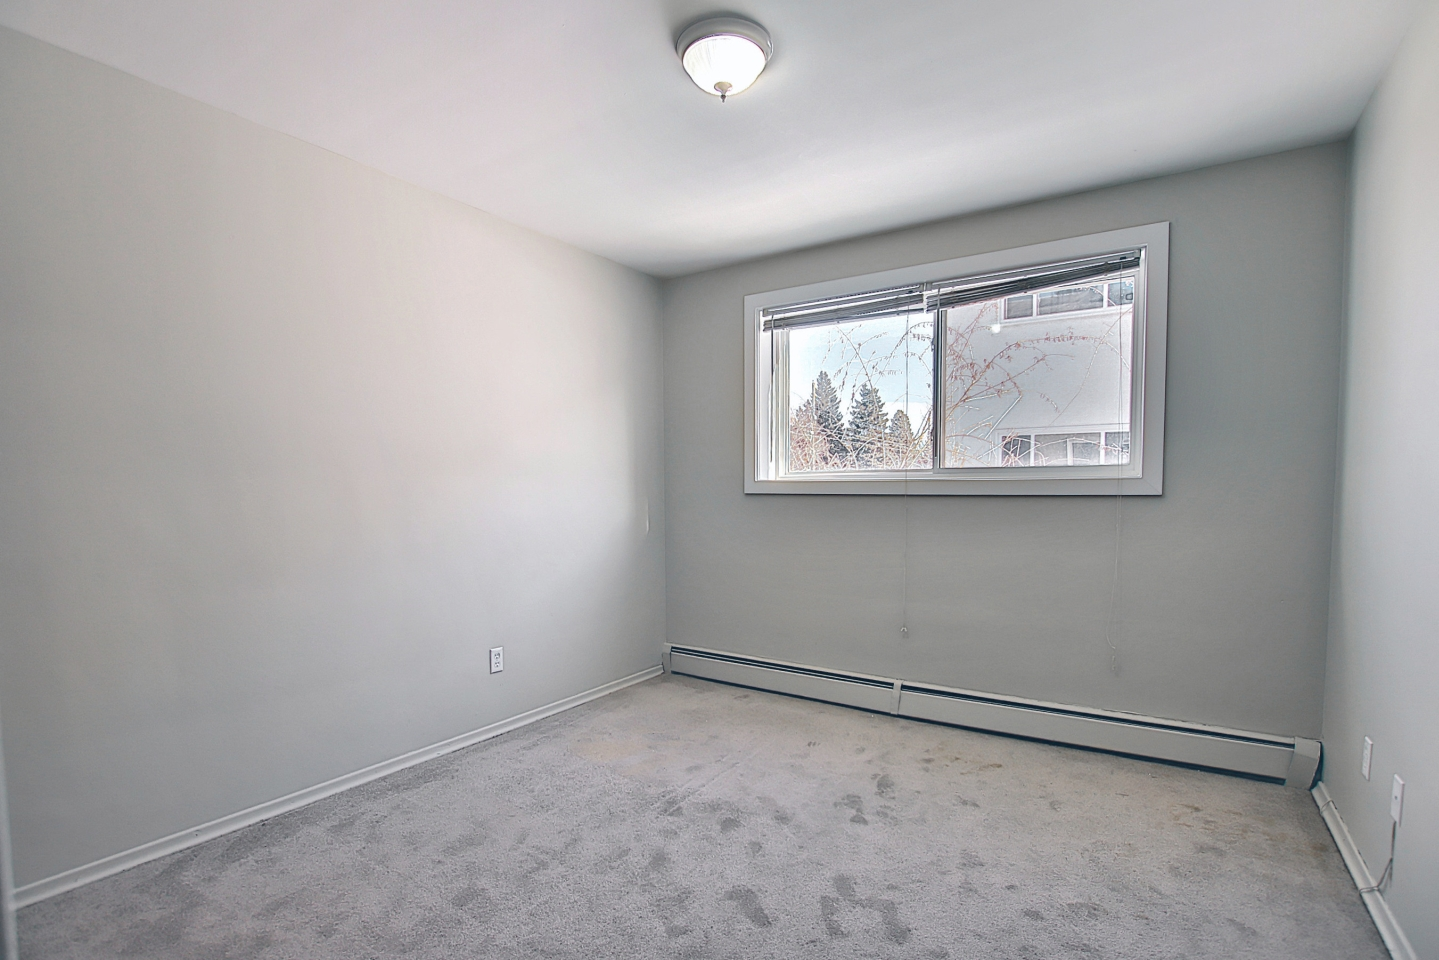 5, 2712 Brentwood Blvd. NW, Calgary, Alberta T2L 1J4, 1 Bedroom Bedrooms, ,1 BathroomBathrooms,Apartment,For Rent,Brentwood Blvd. NW,1114